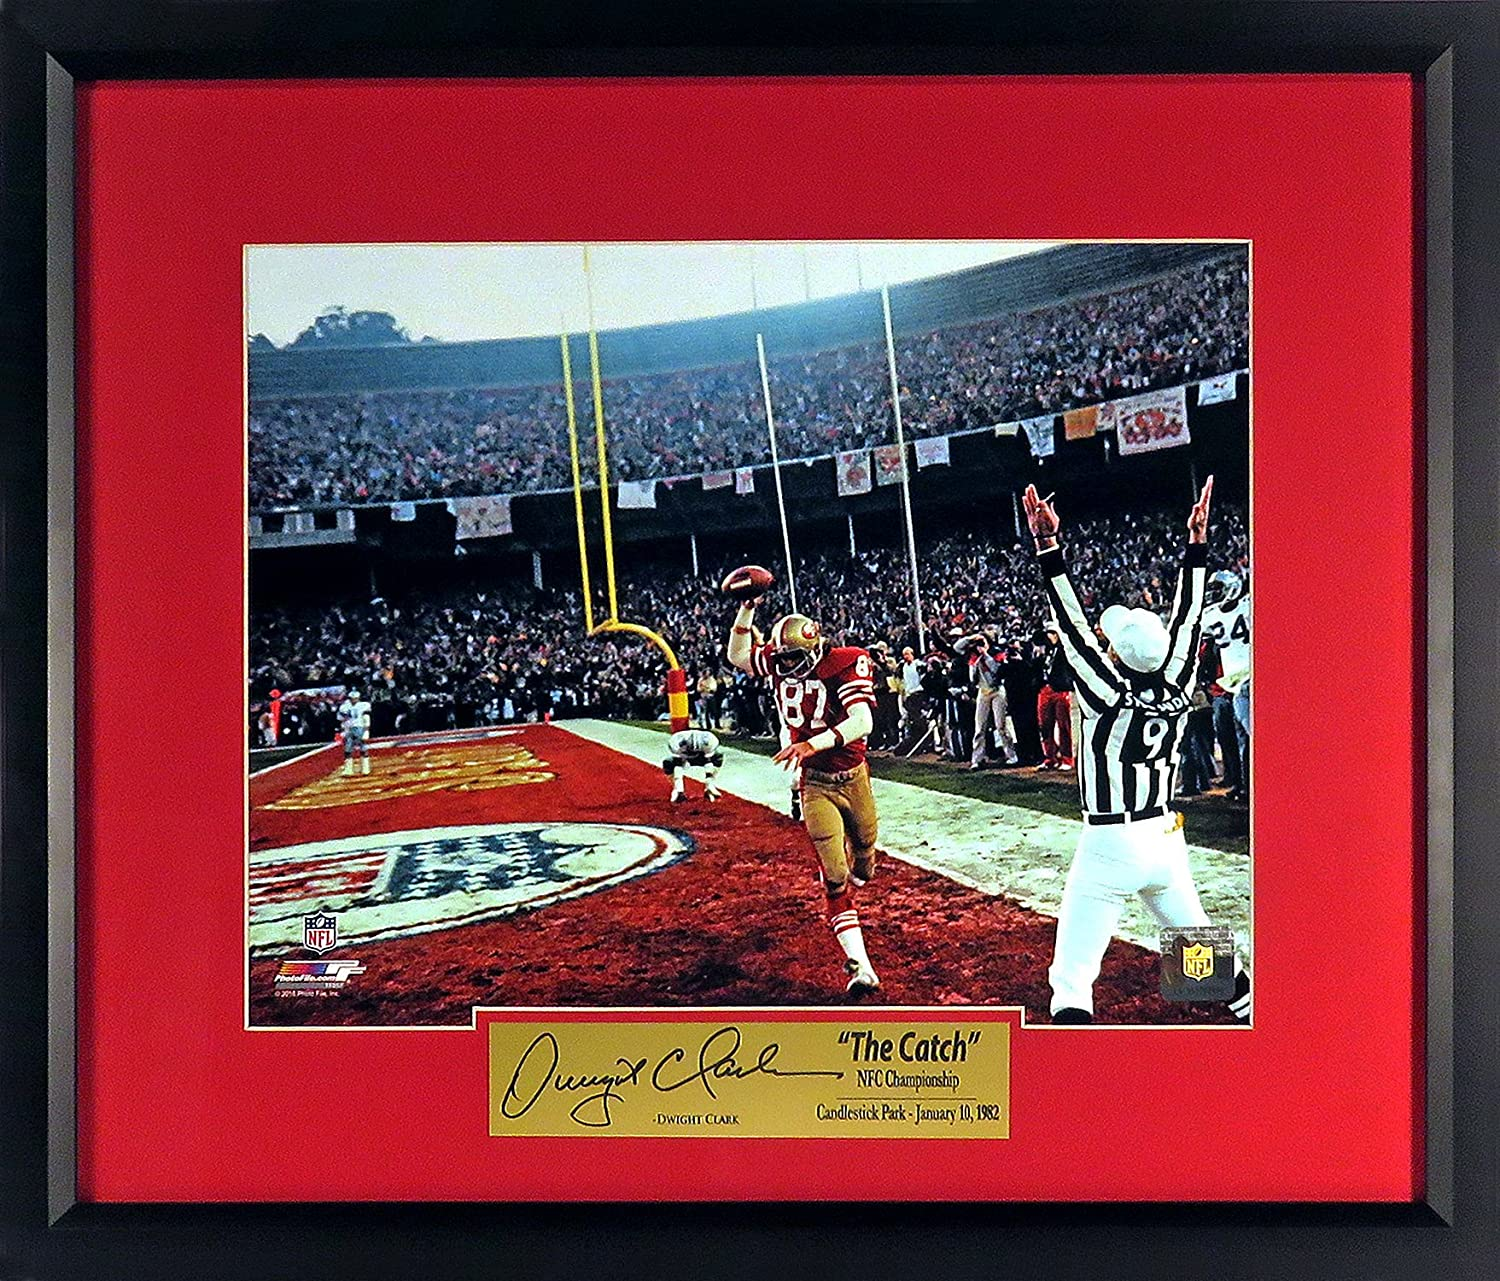 """Amazon.com: SF 49ers Dwight Clark """"Celebrating The Catch At Candlestick""""  11x14 Photograph (SGA Signature Series) Framed: Sports Collectibles"""